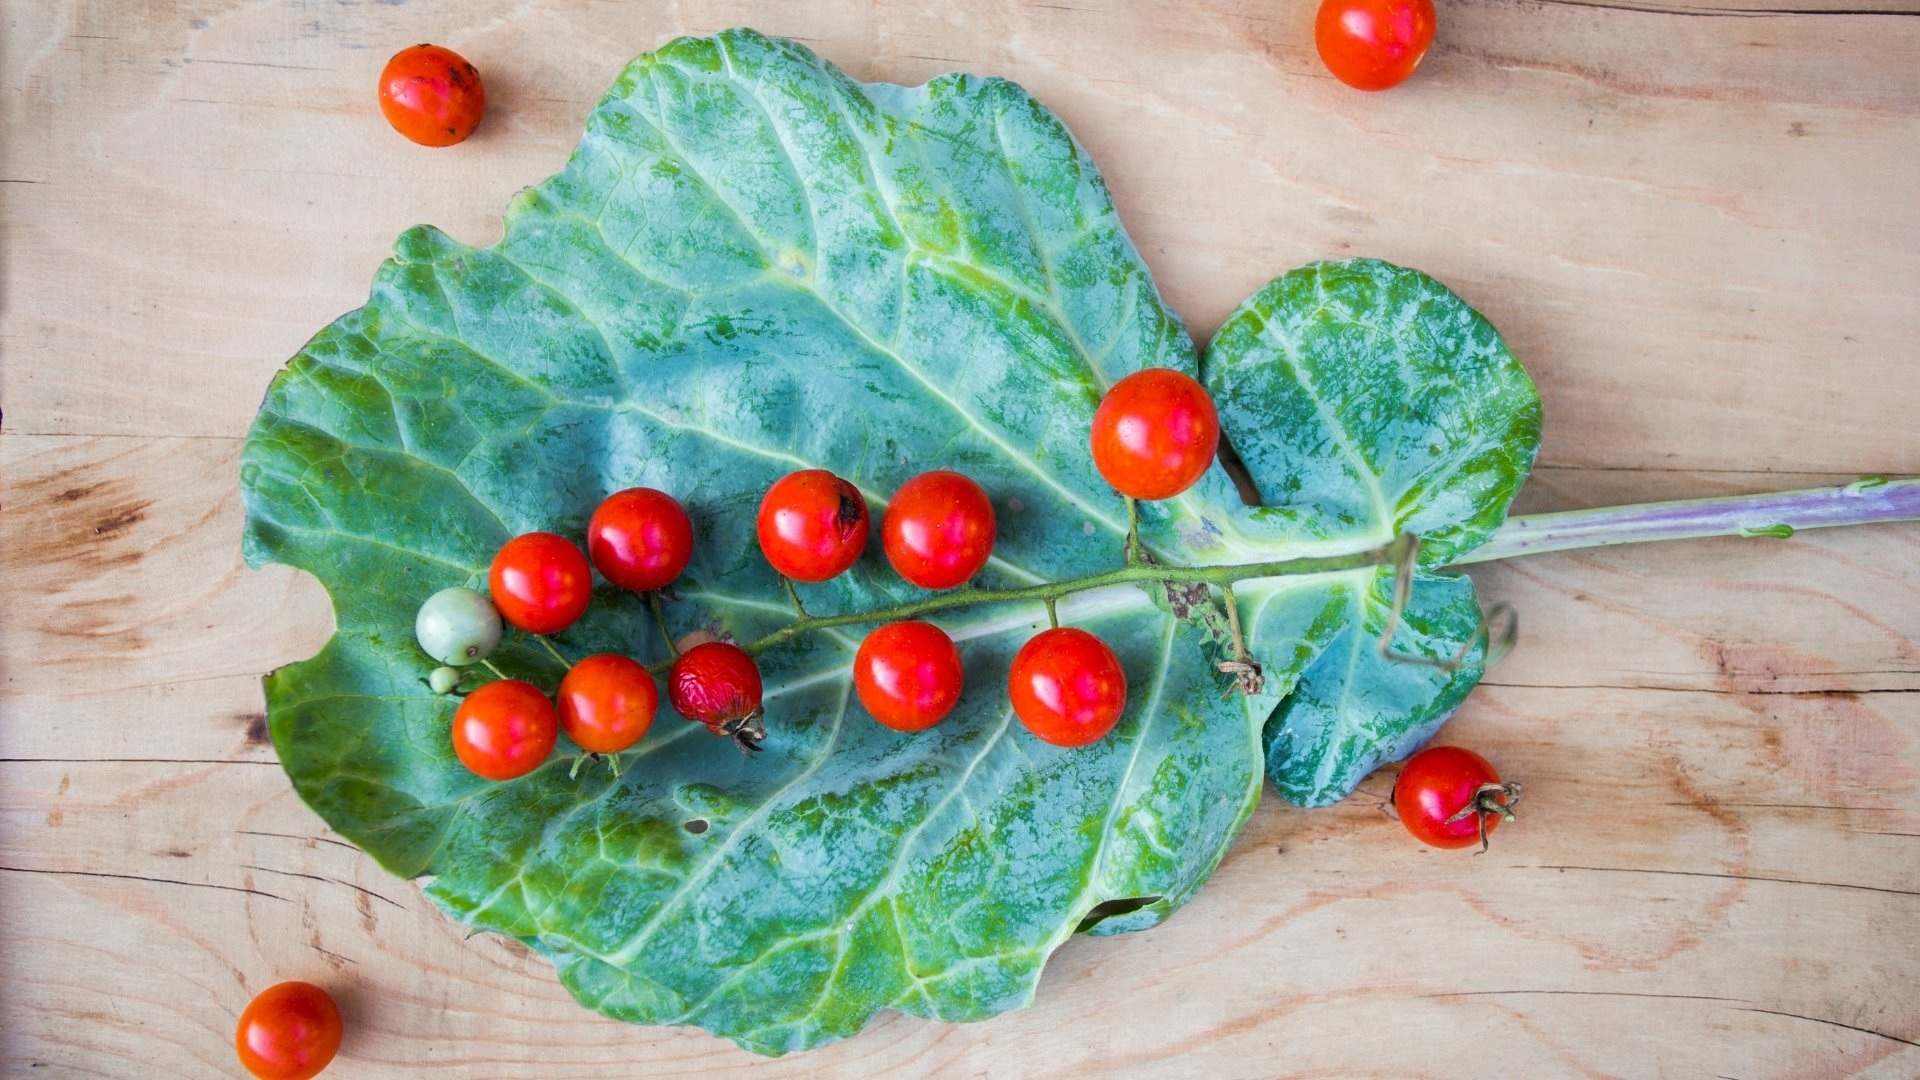 Assuaged-Collard-Green-Leaf-with-Tomatoes-Image